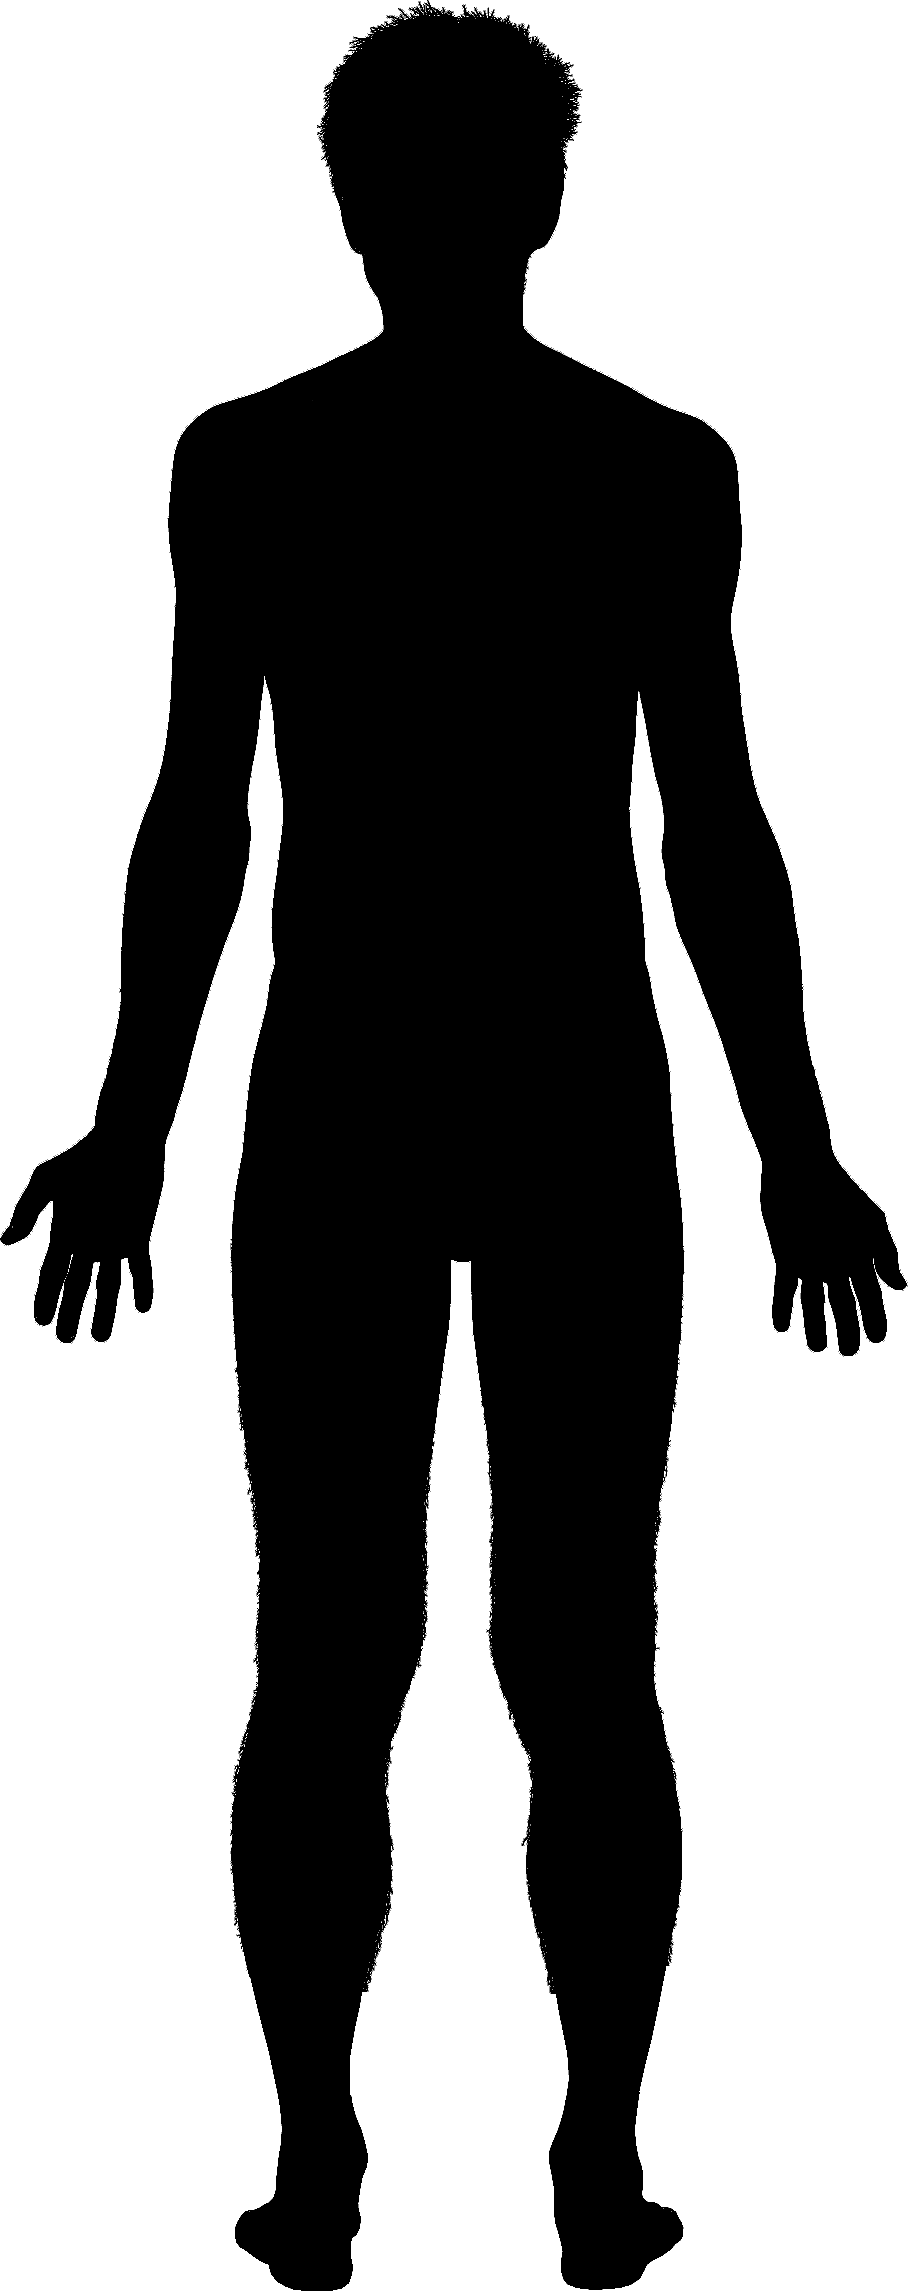 Human form clipart image black and white PNG Human Body Outline Transparent Human Body Outline.PNG Images ... image black and white